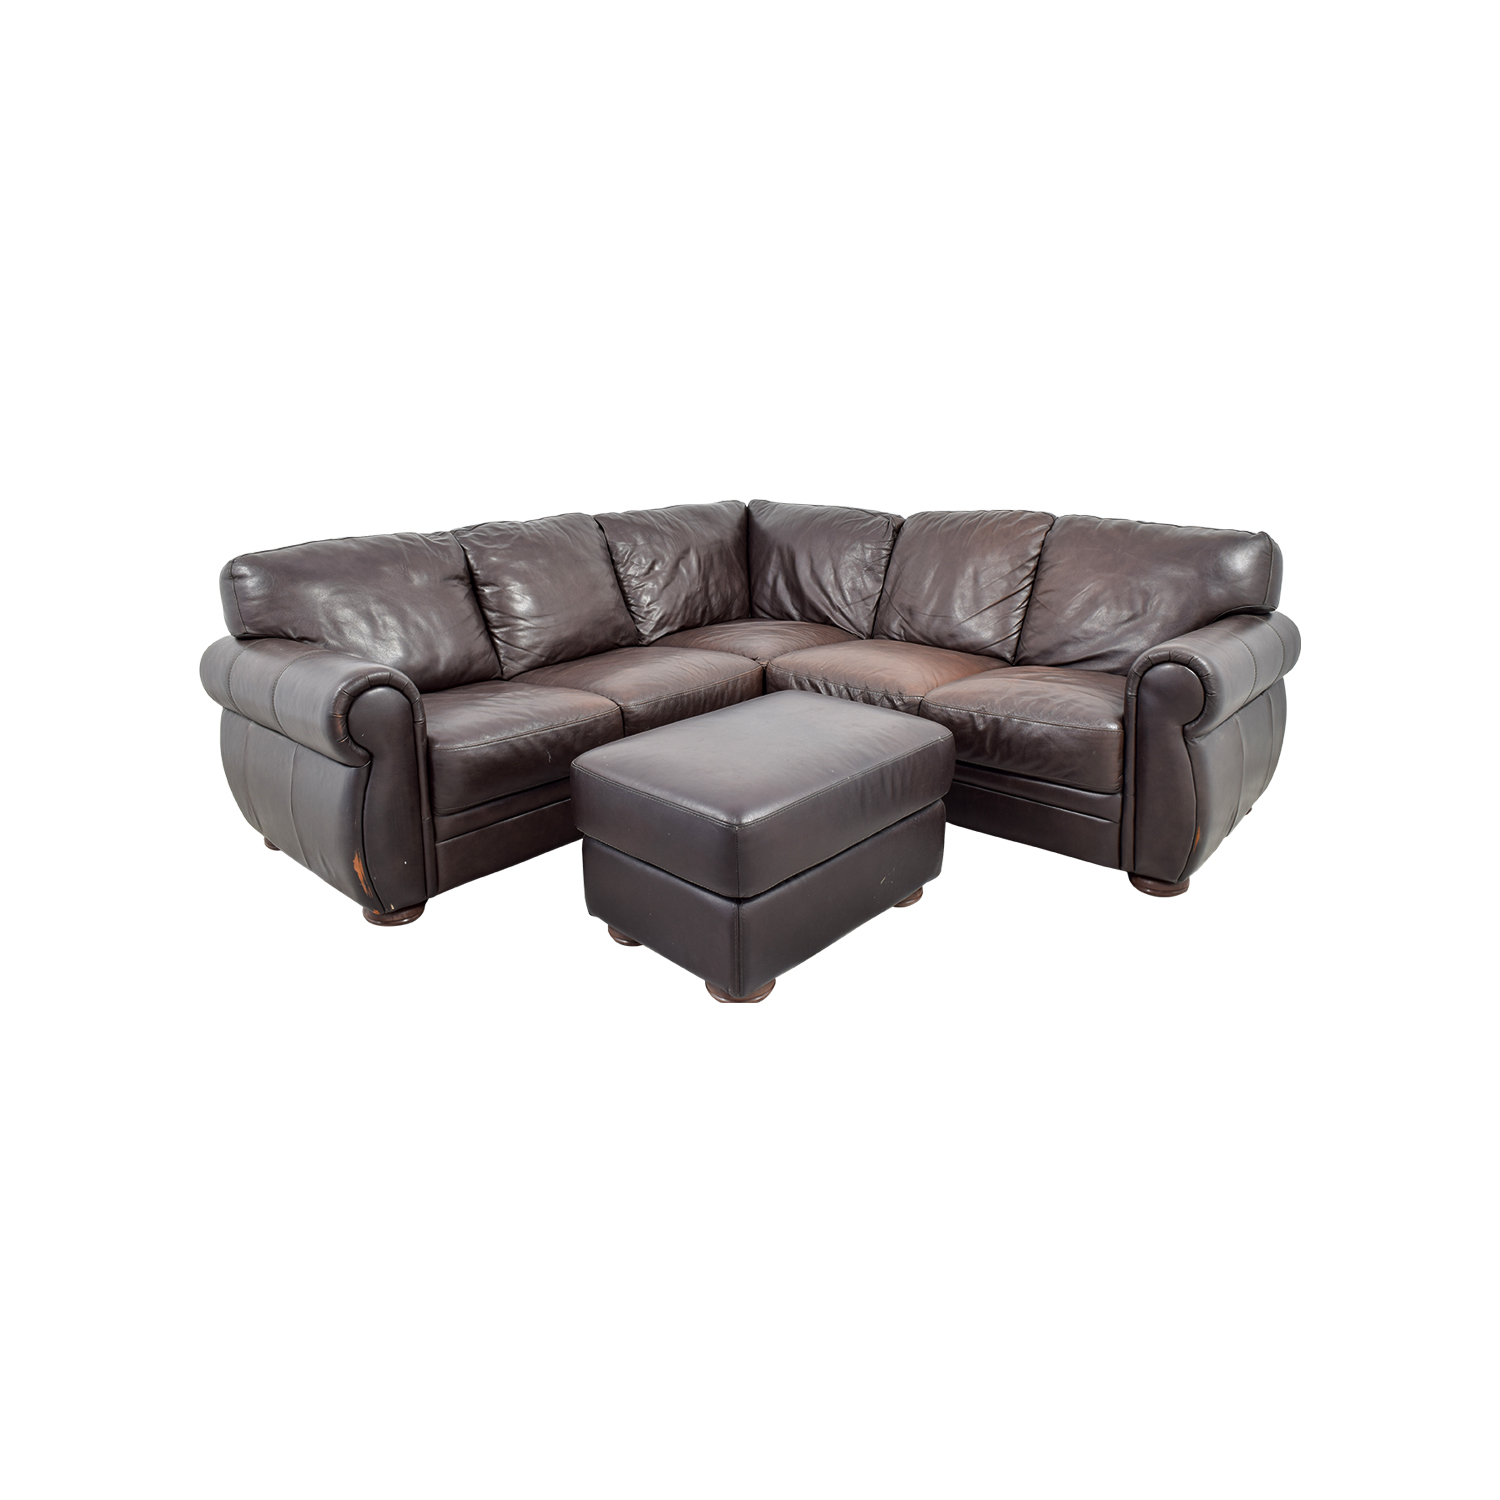 shop Chateau Dax Brown Leather Sectional with Ottoman Chateau Dax Sectionals